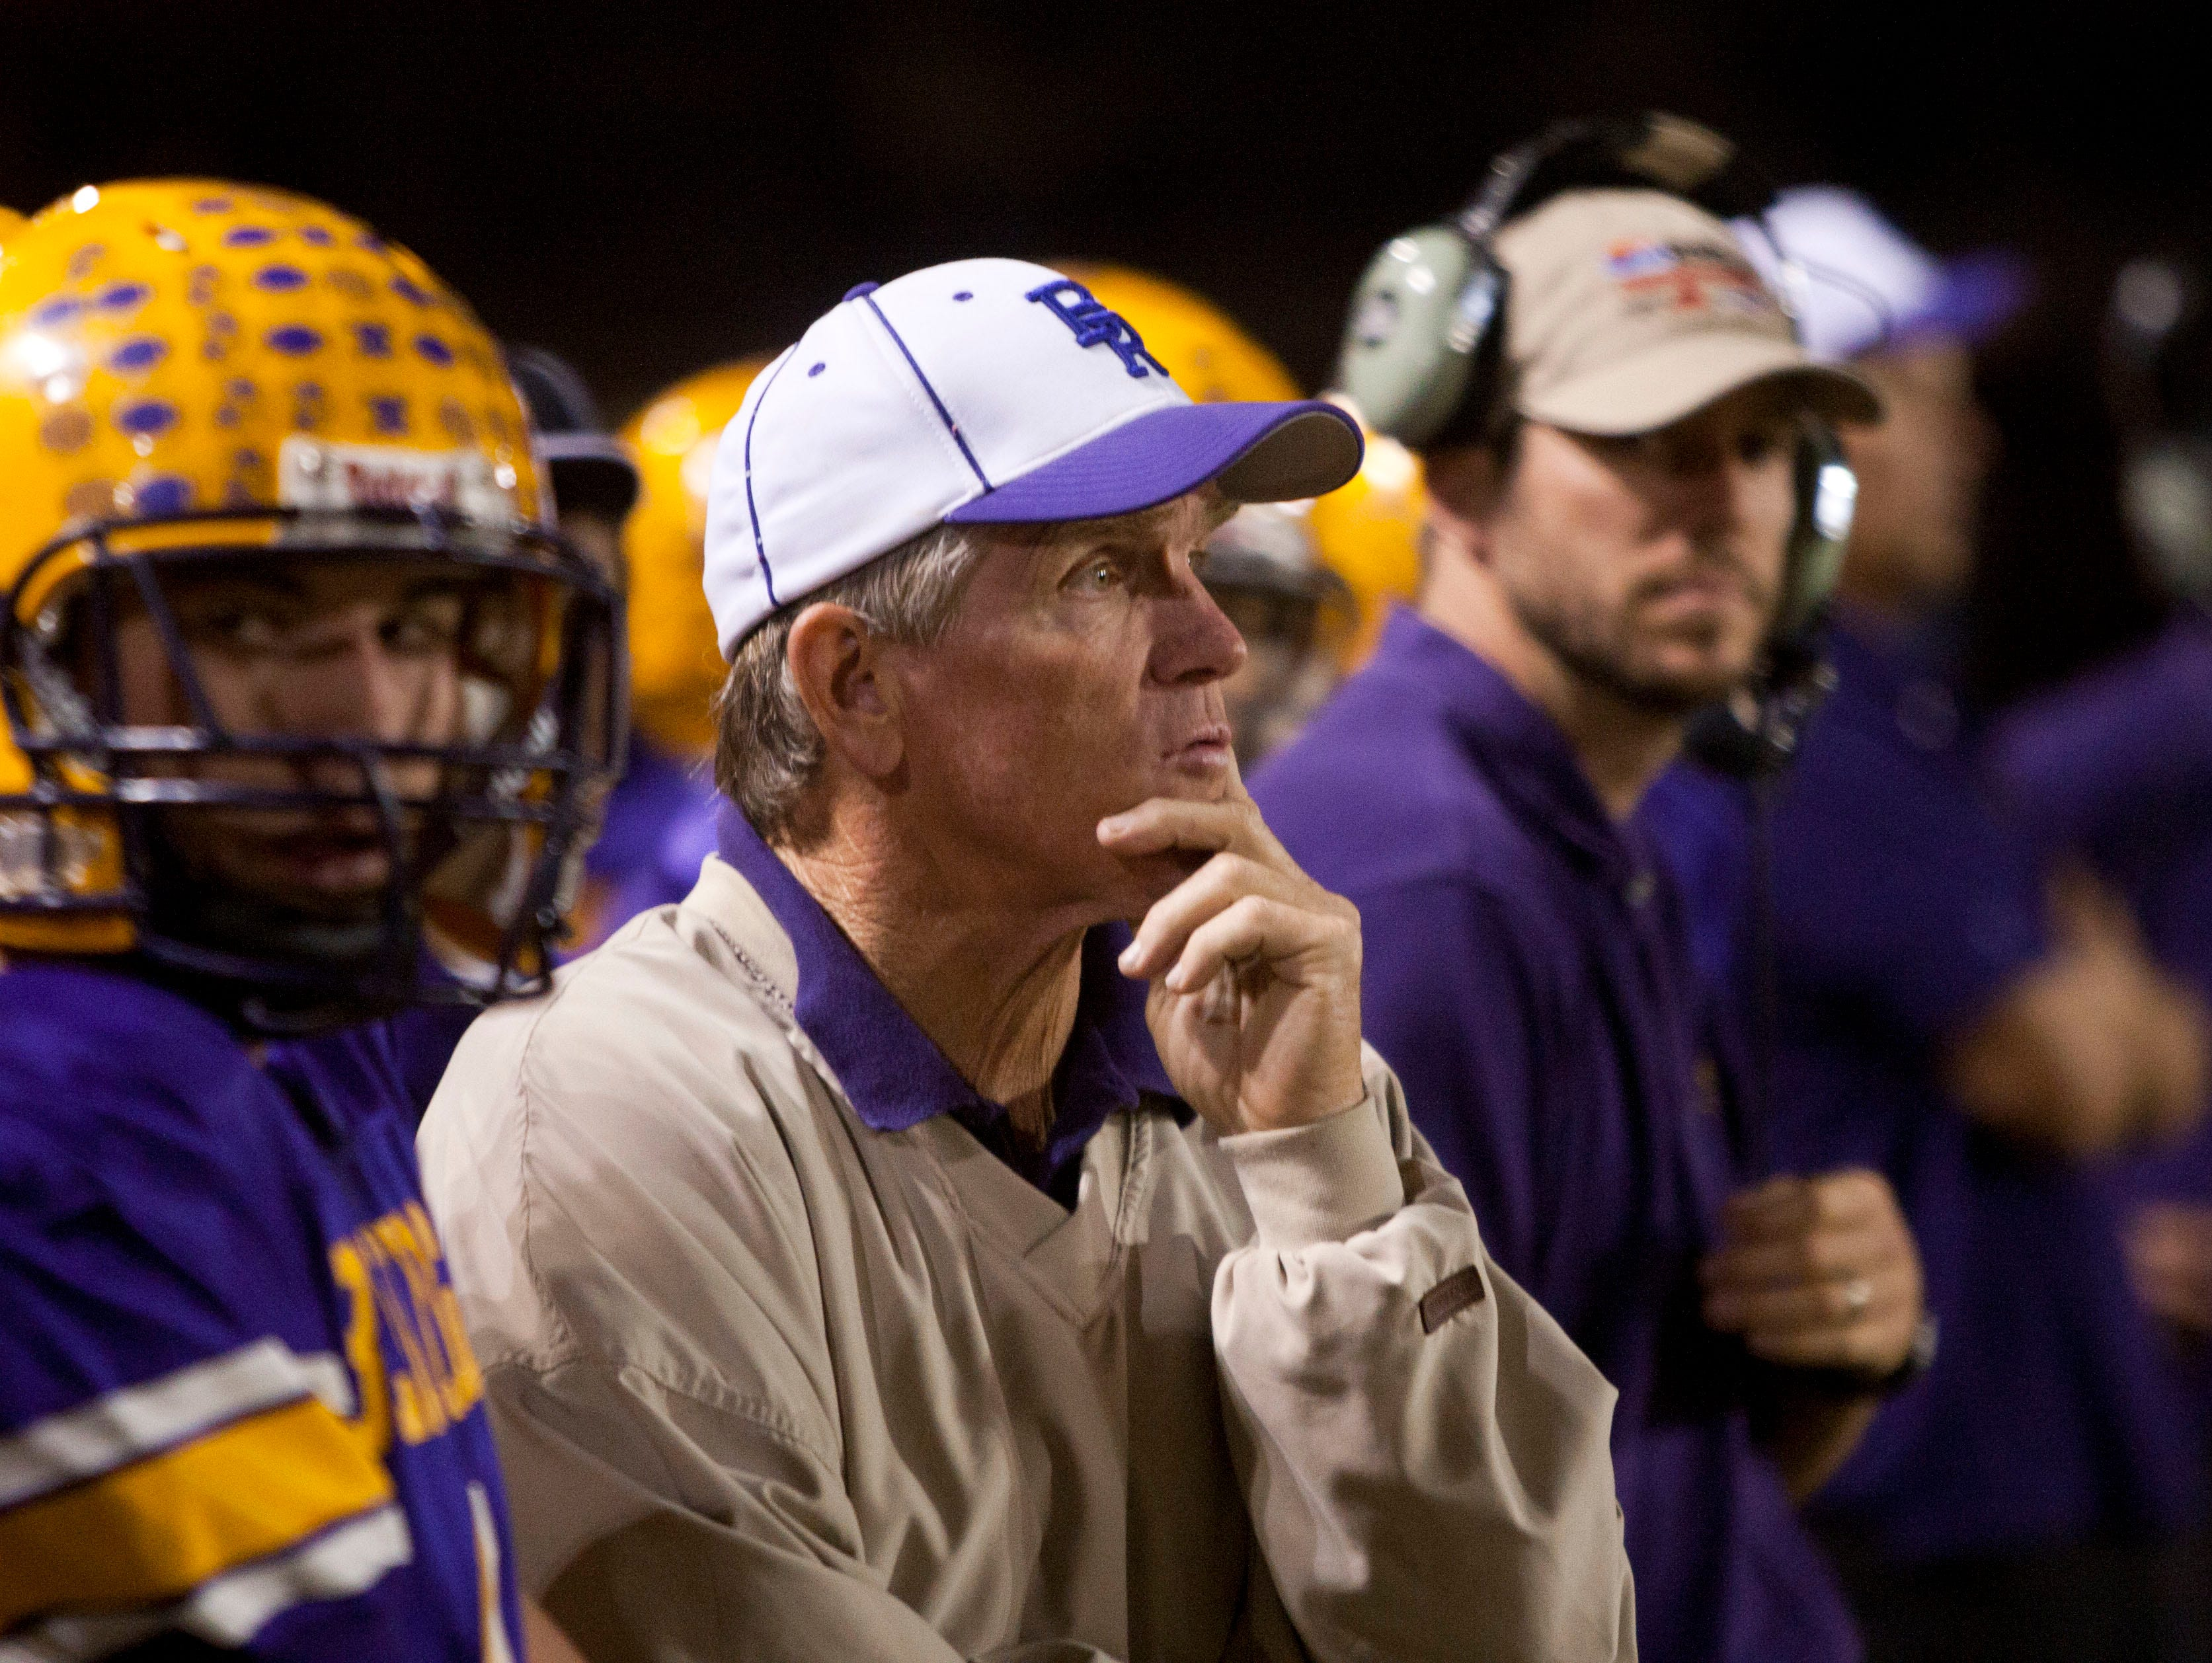 Paul Moro, who will be starting his second year at the San Tan Valley school since leaving a rich legacy at Lakeside Blue Ridge, has 325 career wins.